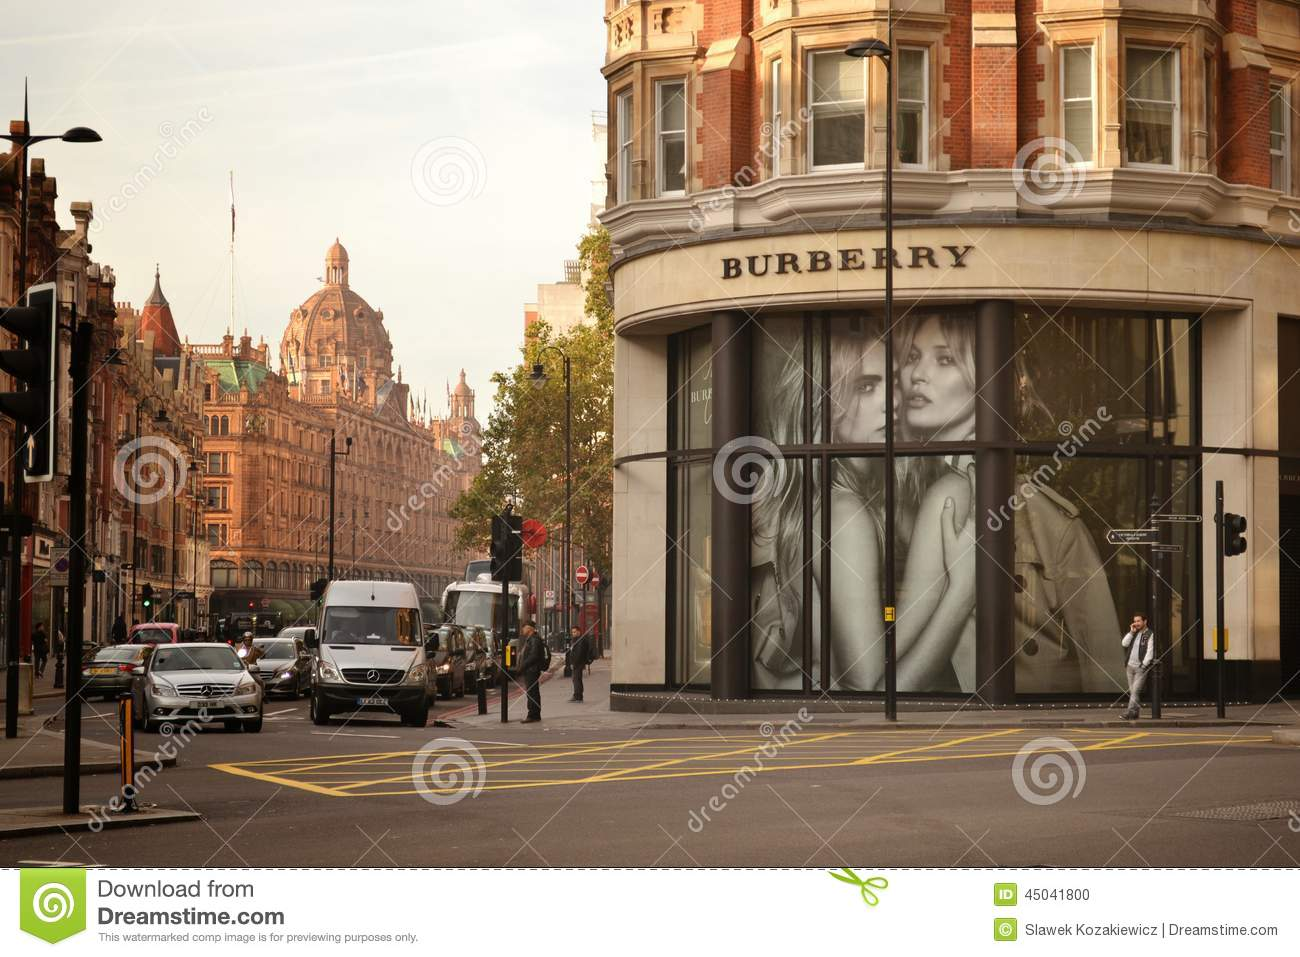 burberry store outlet ed9u  burberry outlet londres